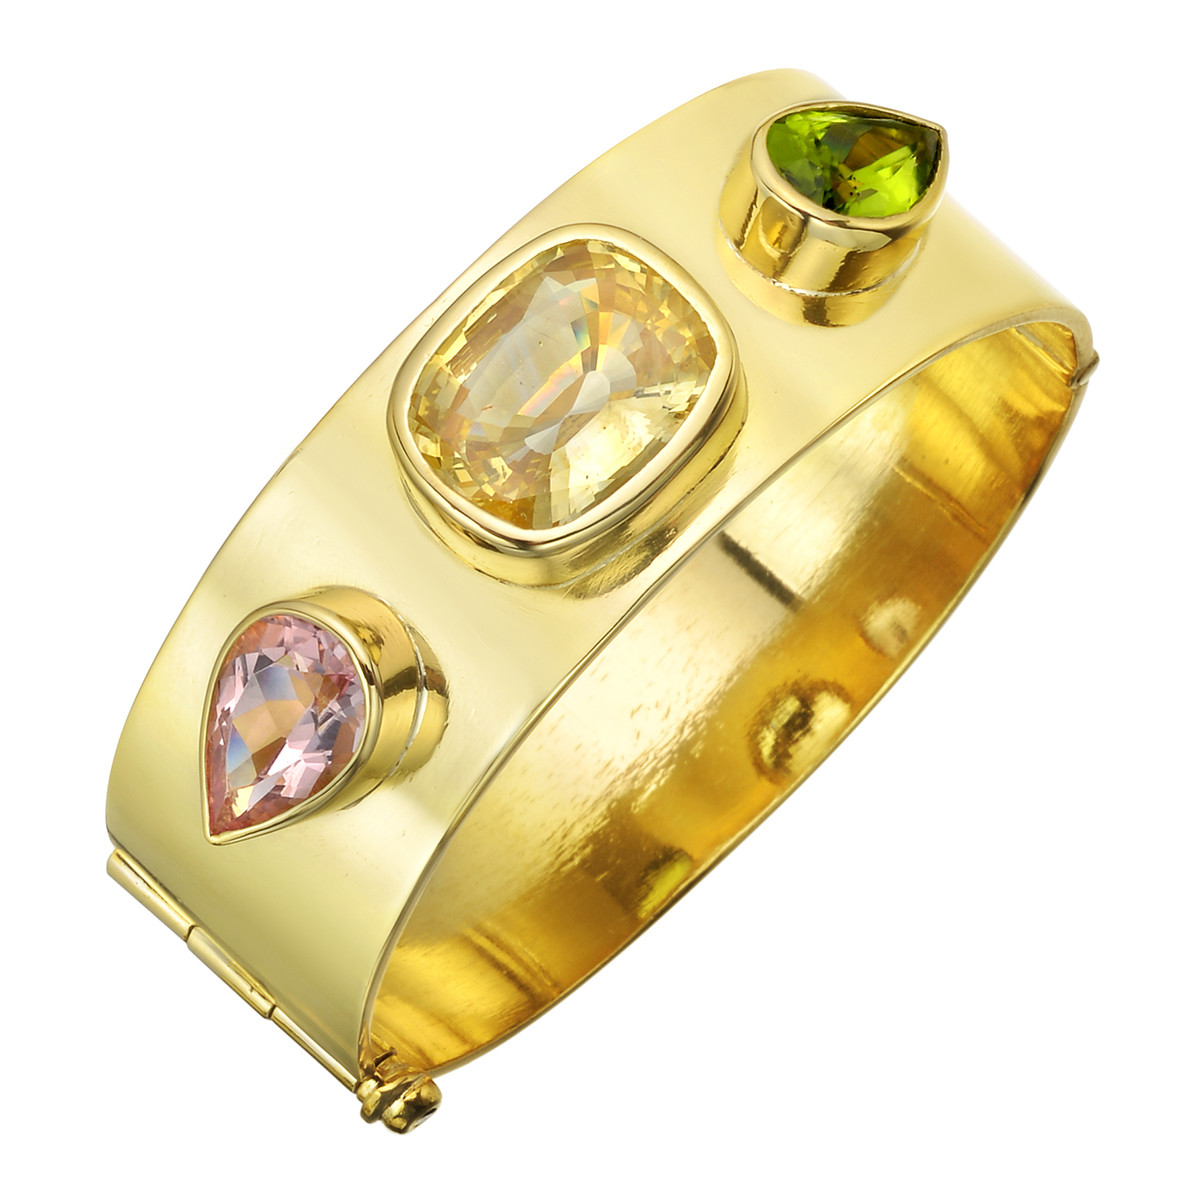 22k Yellow Gold Gem-Set Bangle Bracelet